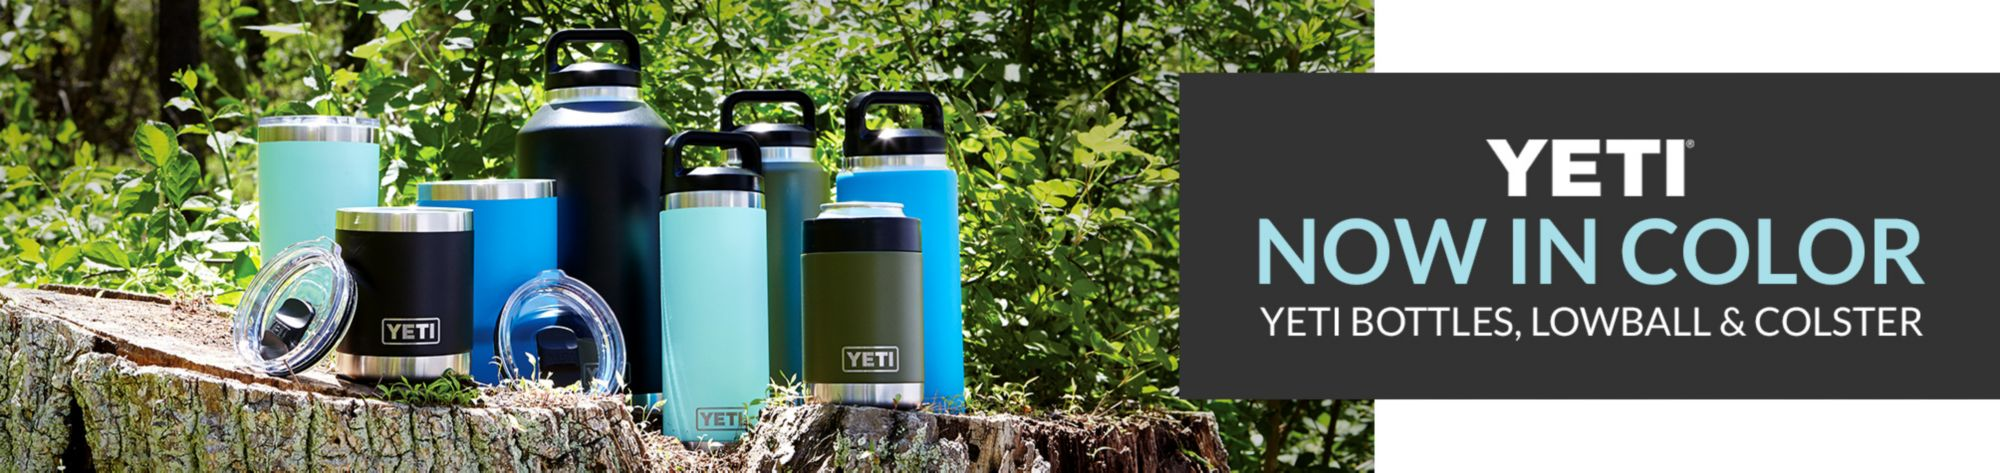 Shop Yeti Colors